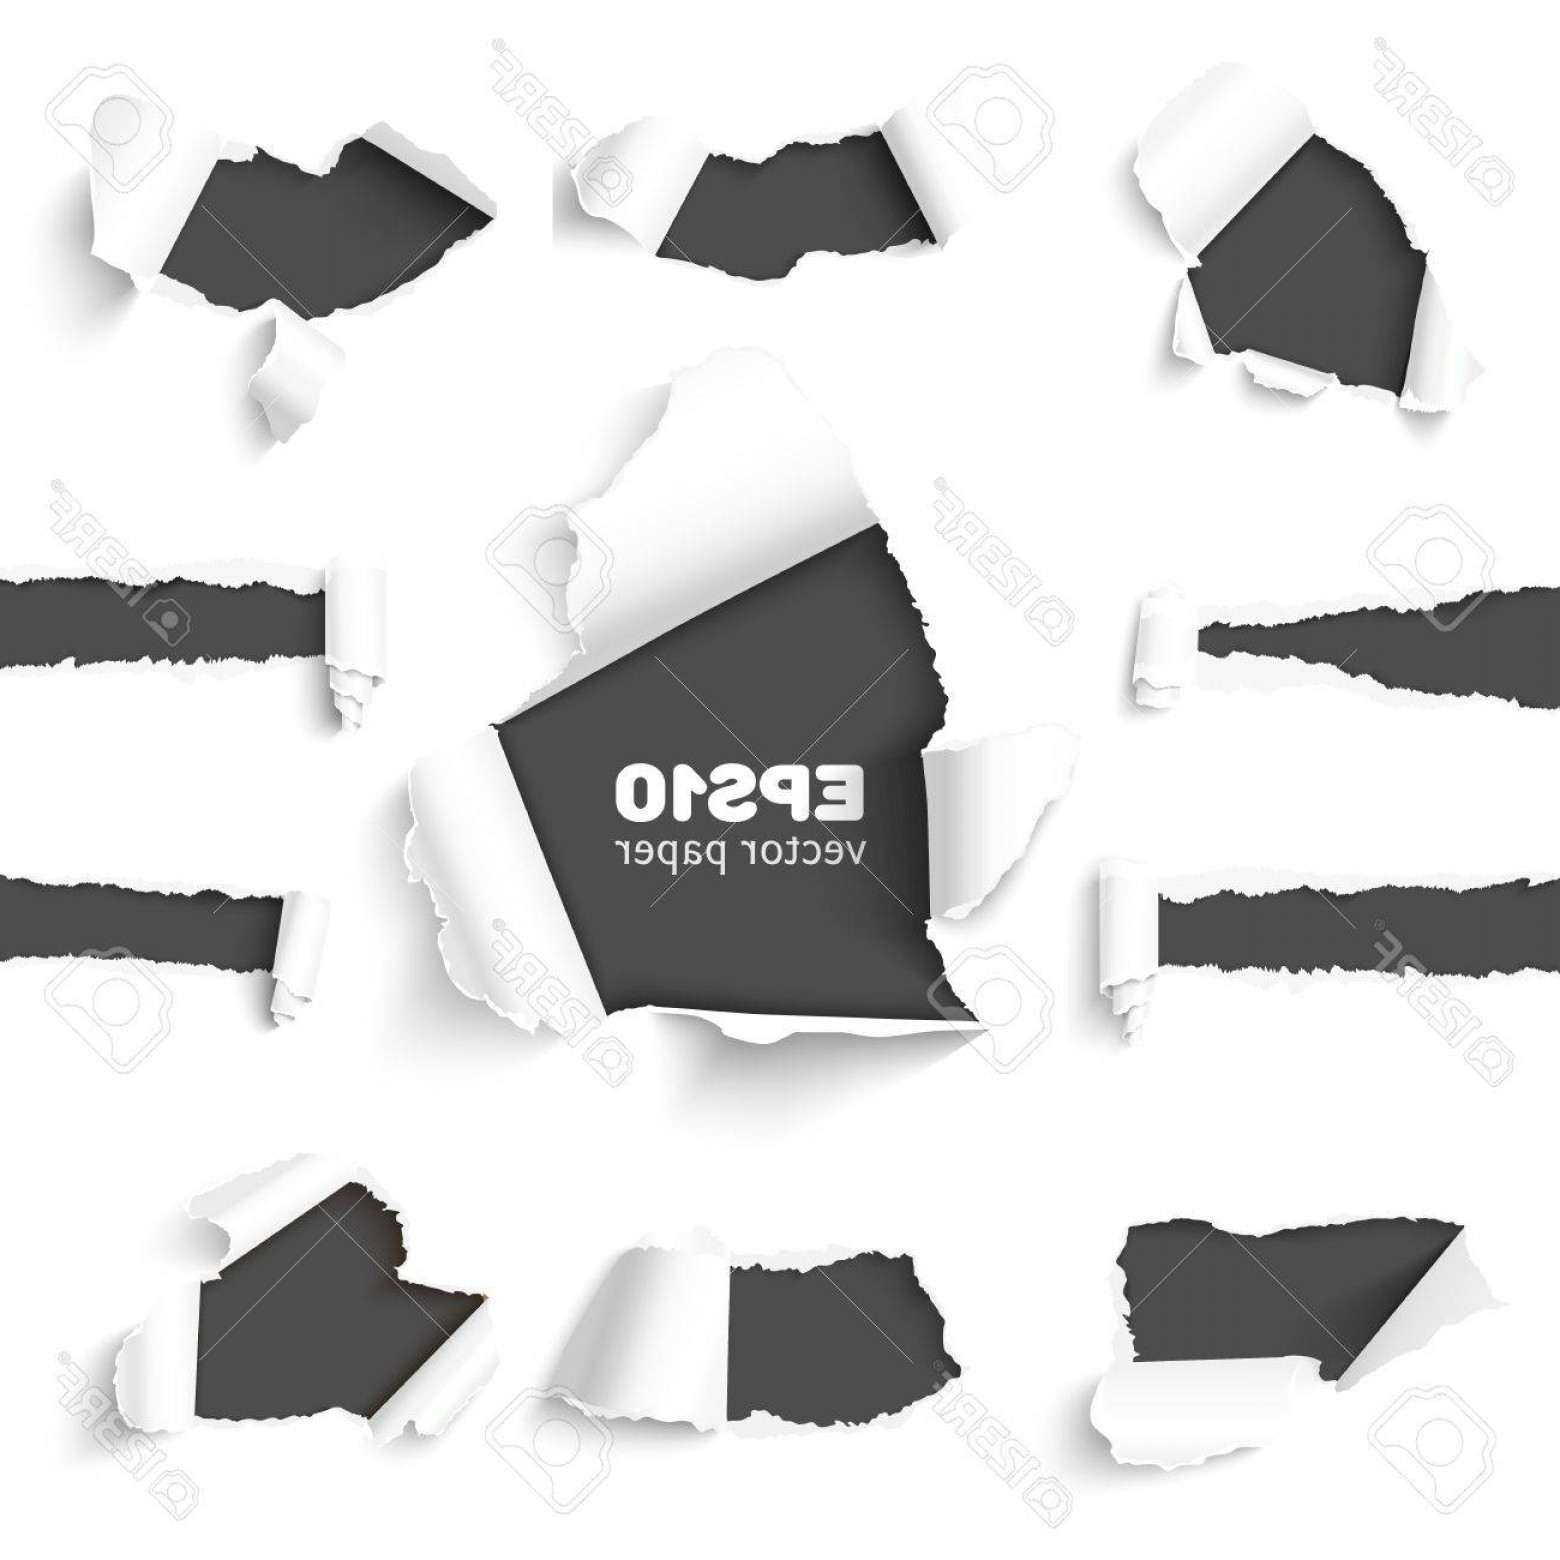 Ripped Black And White Vector: Photostock Vector Set Of Holes In White Paper With Torn Sides Over Dark Paper Background With Space For Text Realistic